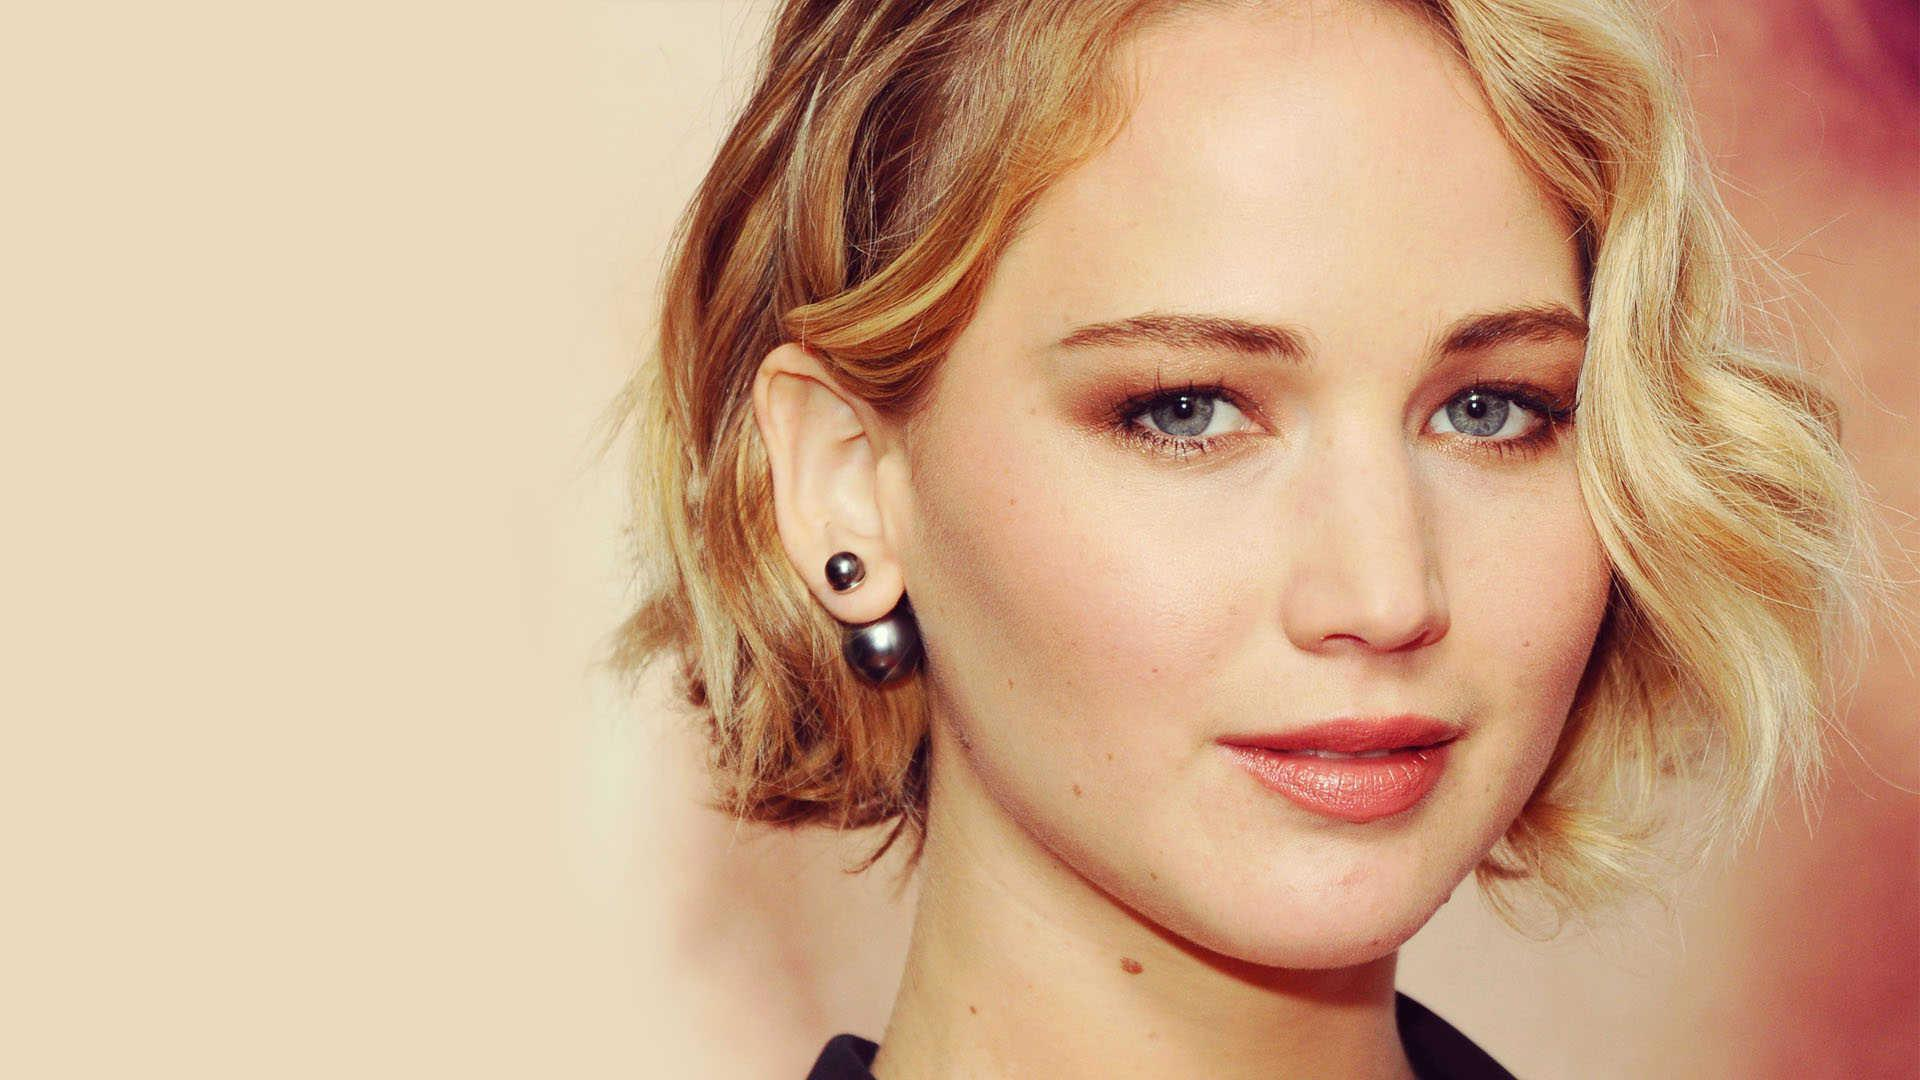 Jennifer Lawrence Wallpapers High Resolution and Quality Download